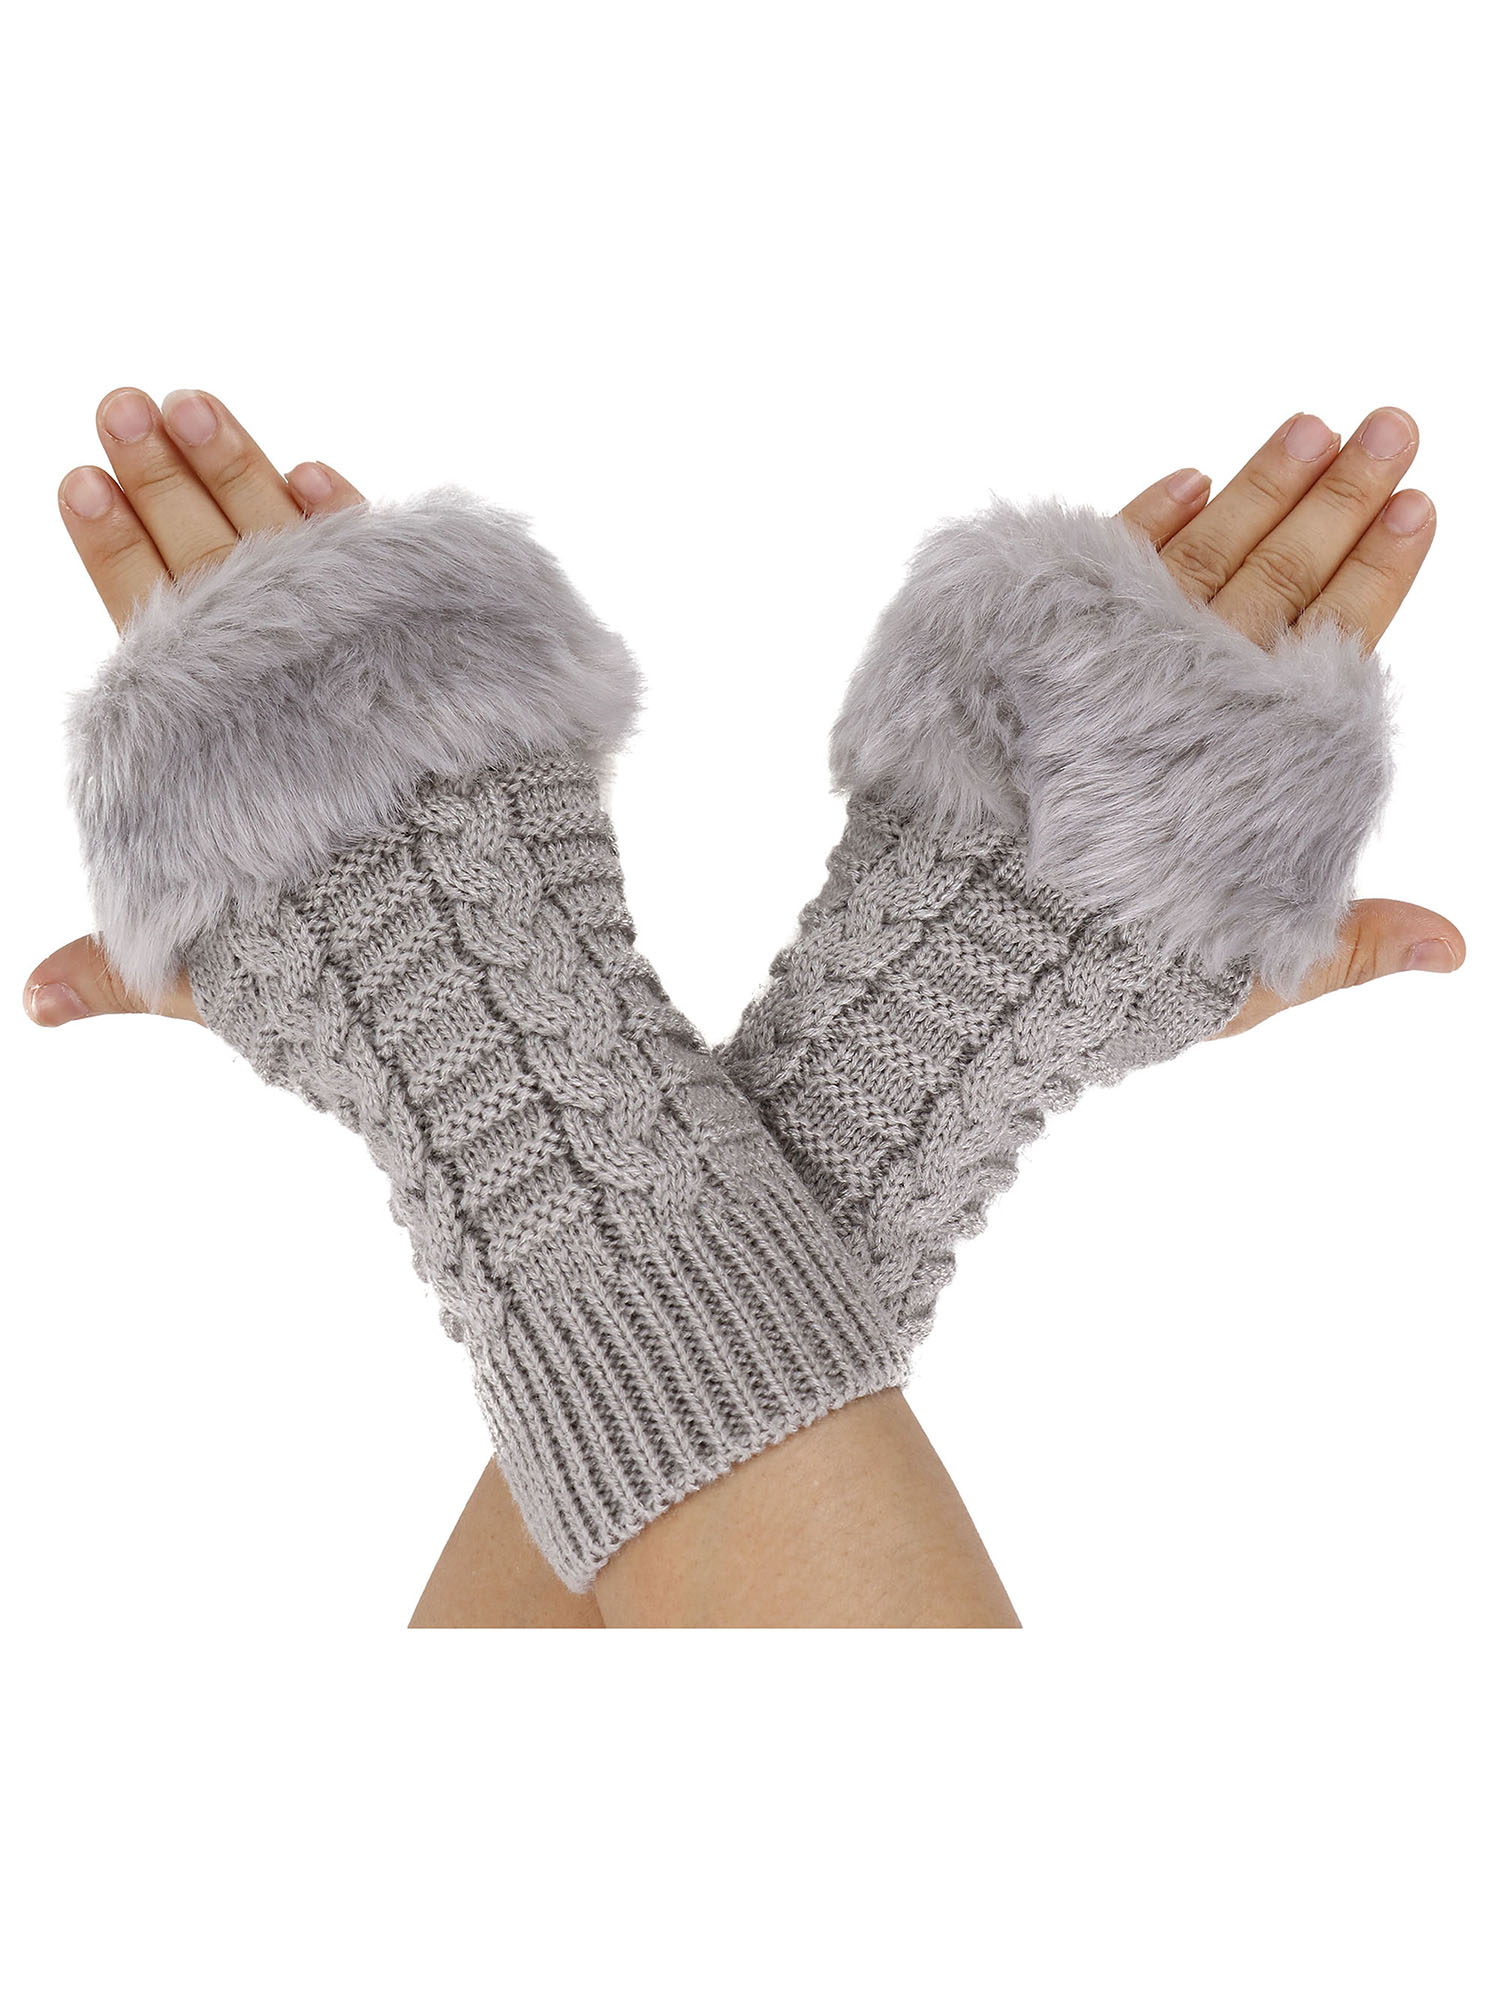 Women/'s Mittens Gloves with Faux Fur Warm Winter Fall Cute Knitted